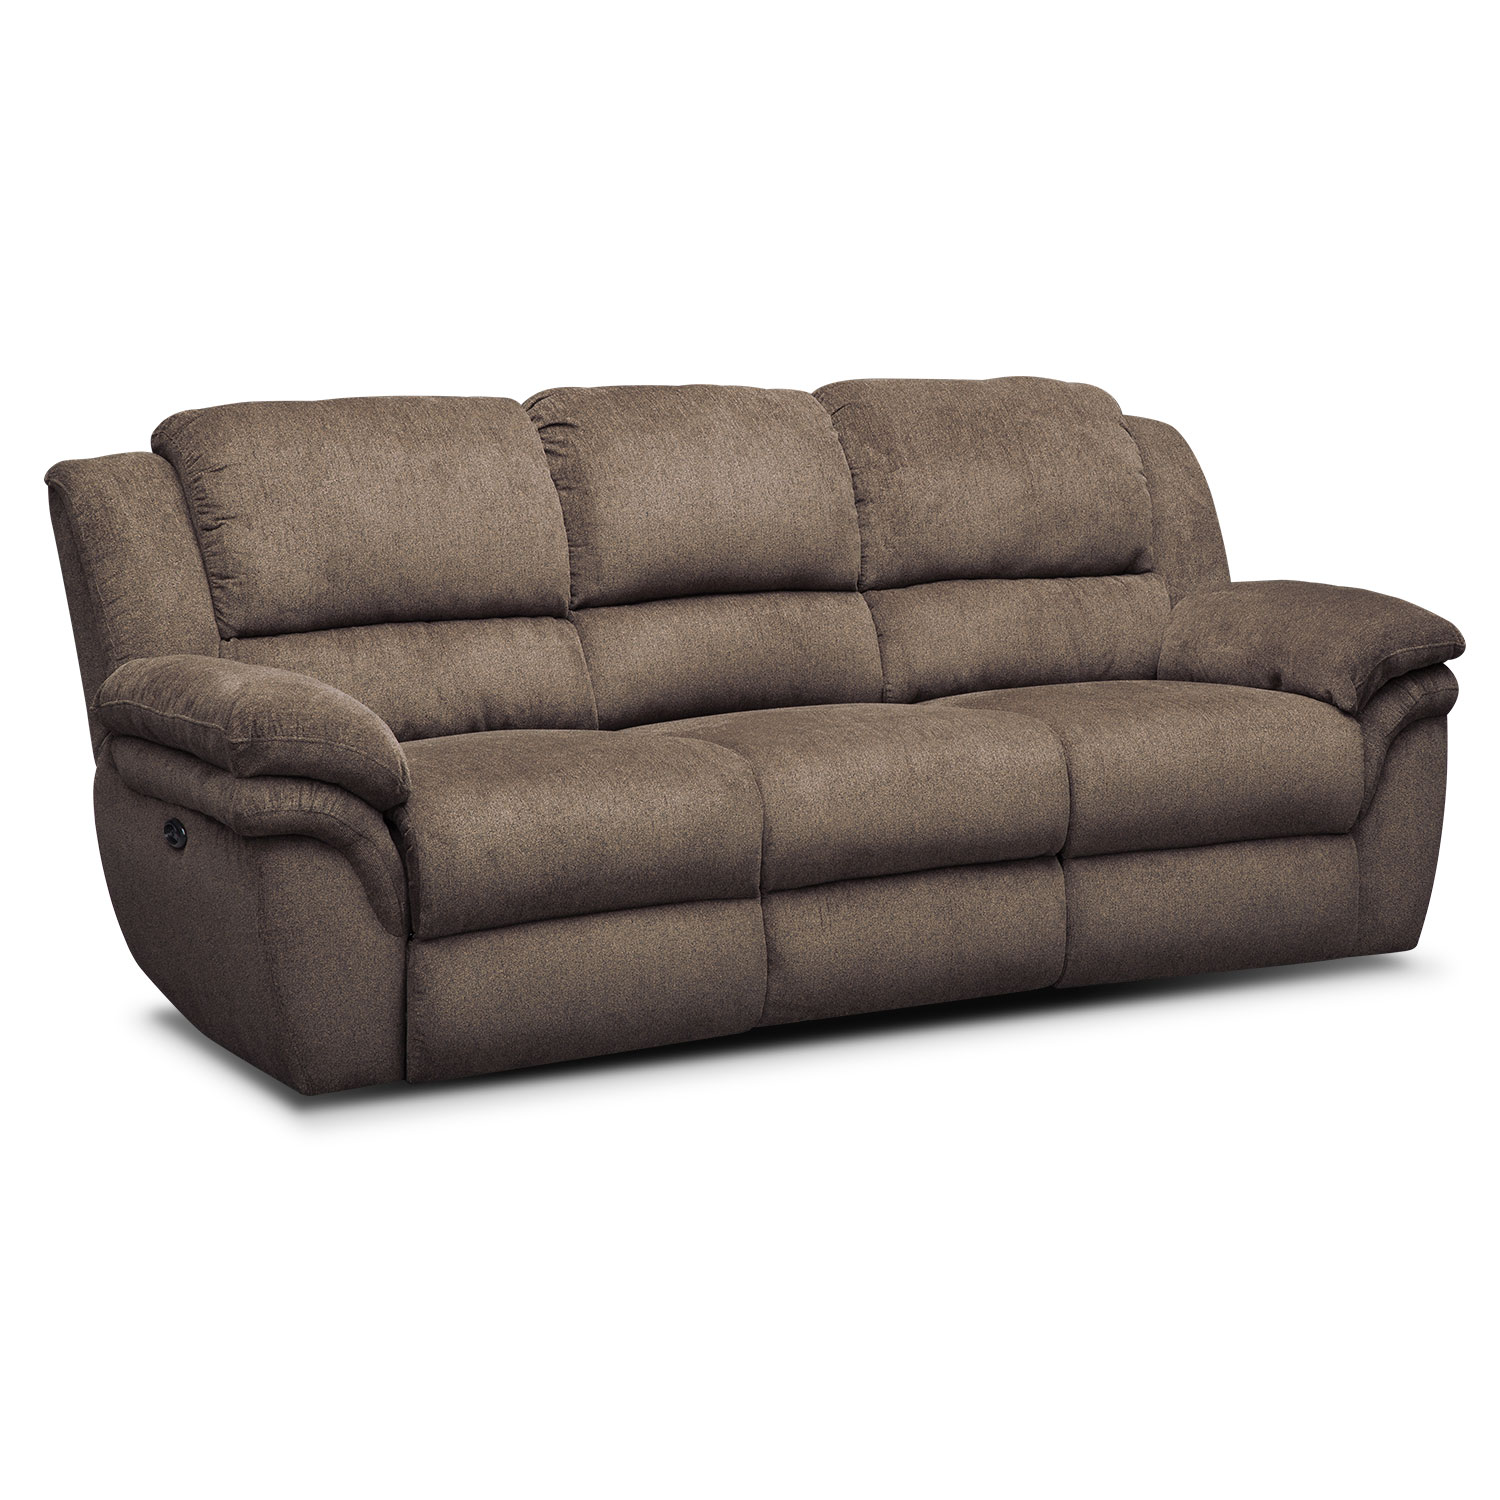 Aldo Power Reclining Sofa   Mocha Part 48